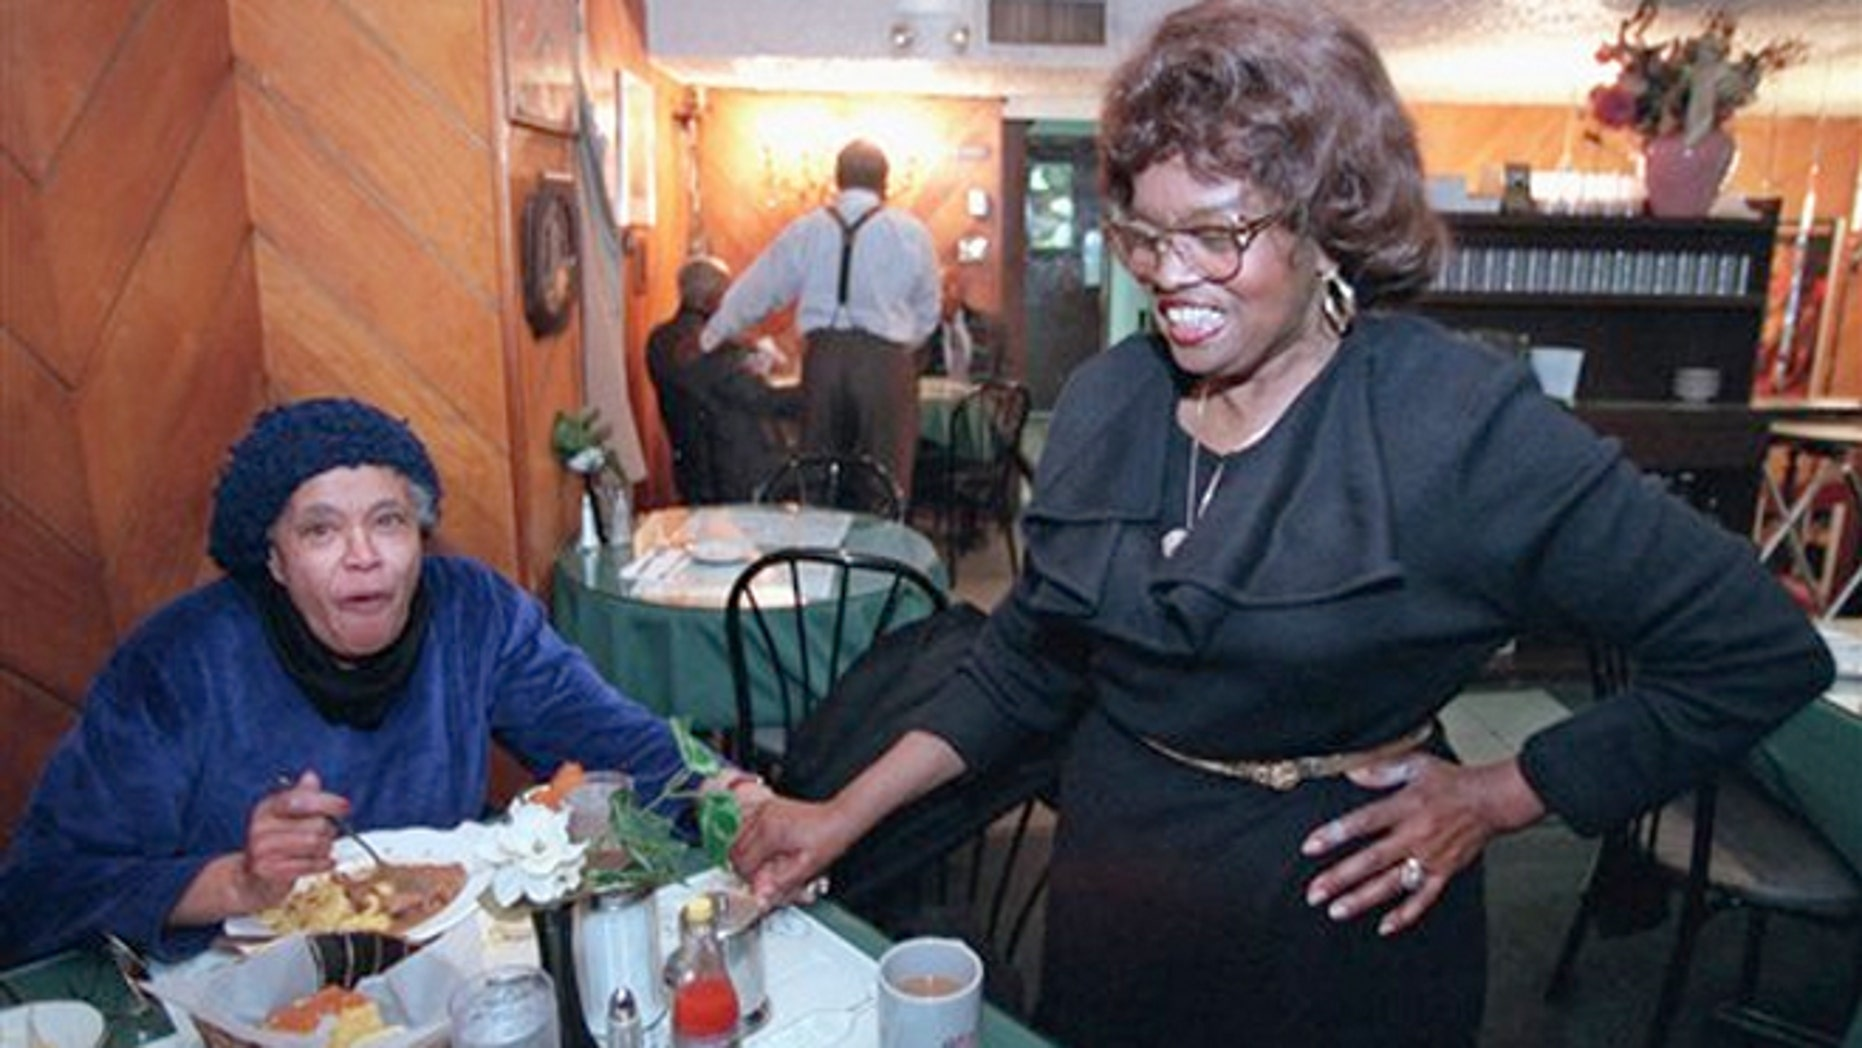 Sylvia Woods died Thursday afternoon at her home in Mount Vernon, N.Y.